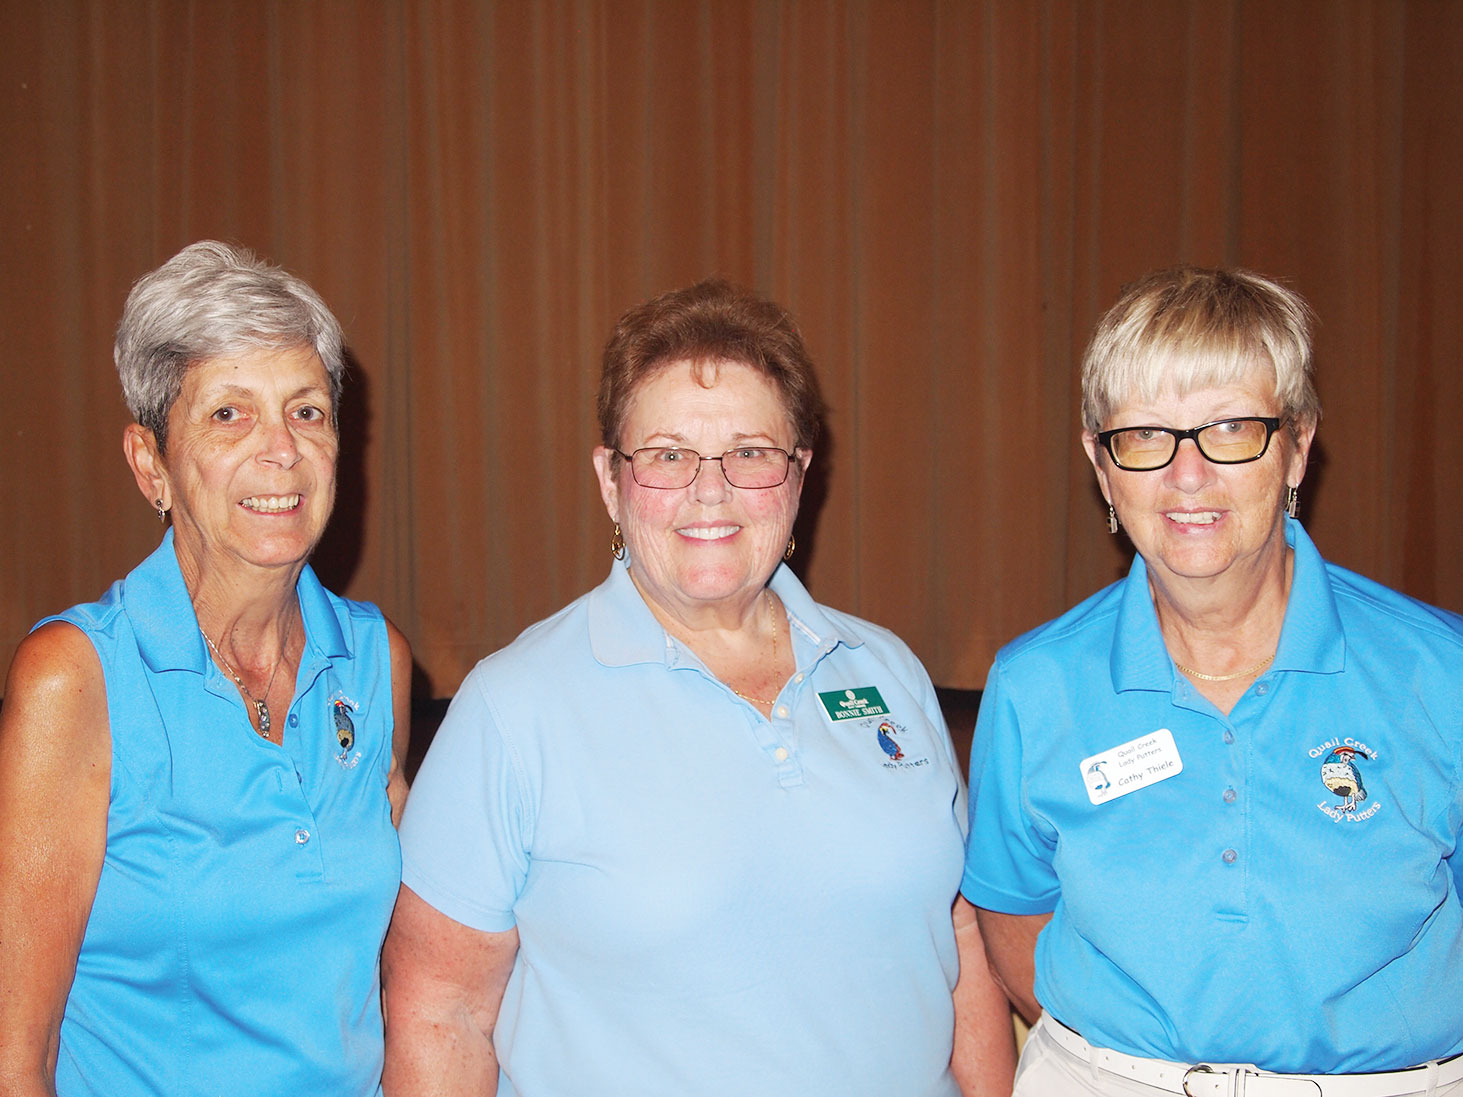 Left to right: Sheila Wyllie and Bonnie Smith did not share their $5 money hole winnings with Putters President Cathy Thiele; photo by Sylvia Butler.